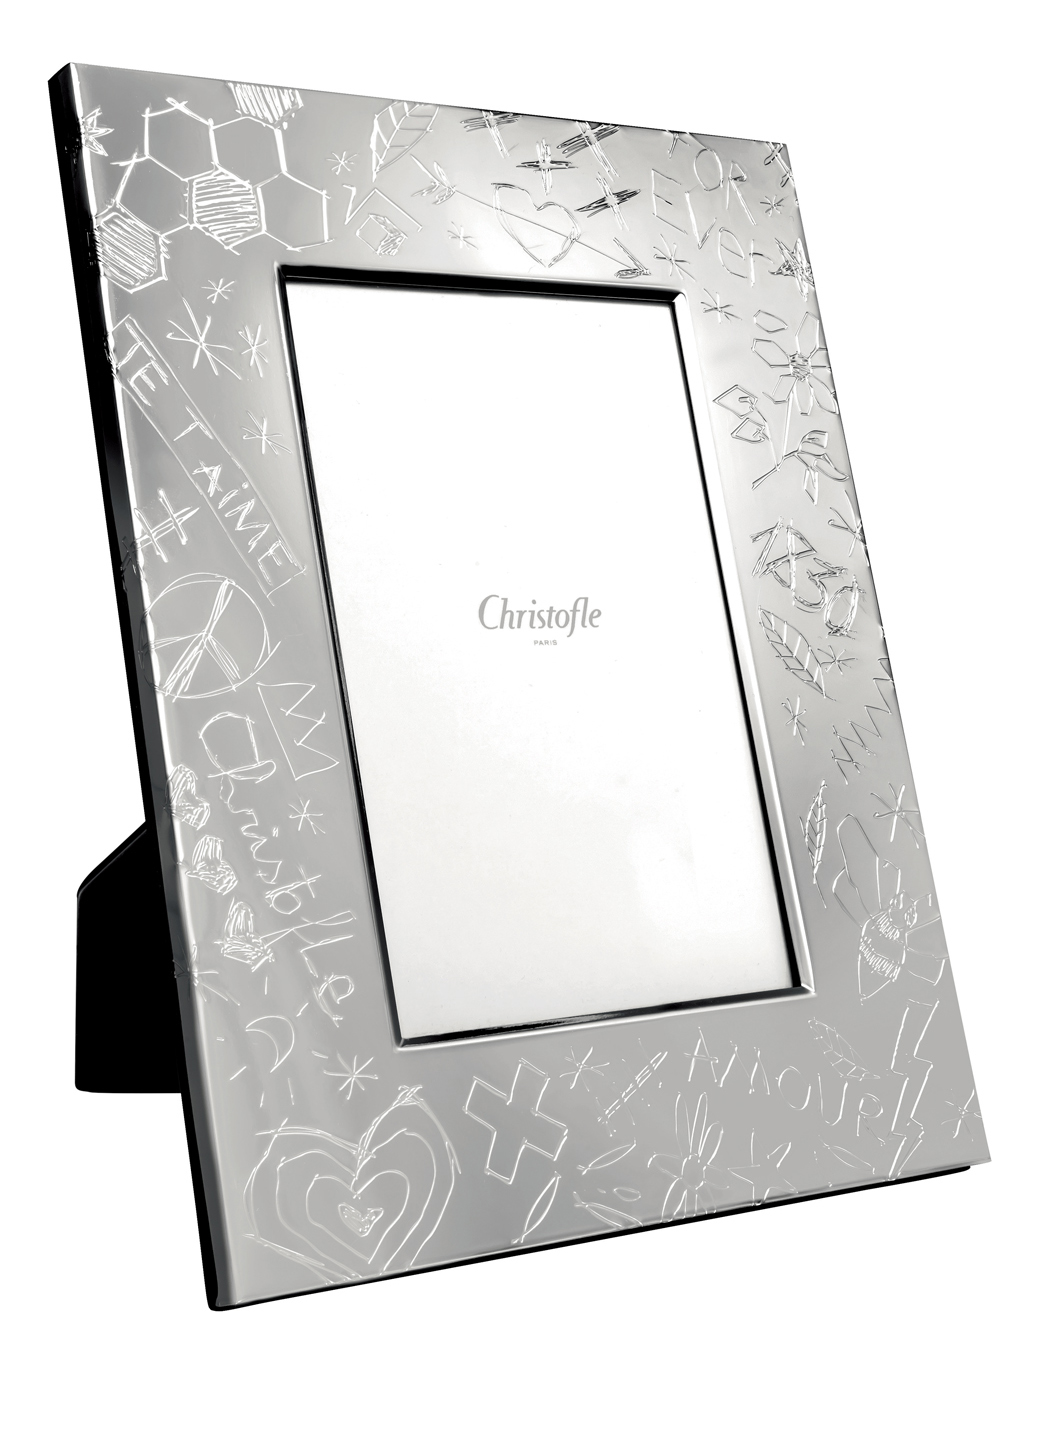 photo frame Christofle graffiti 04256091